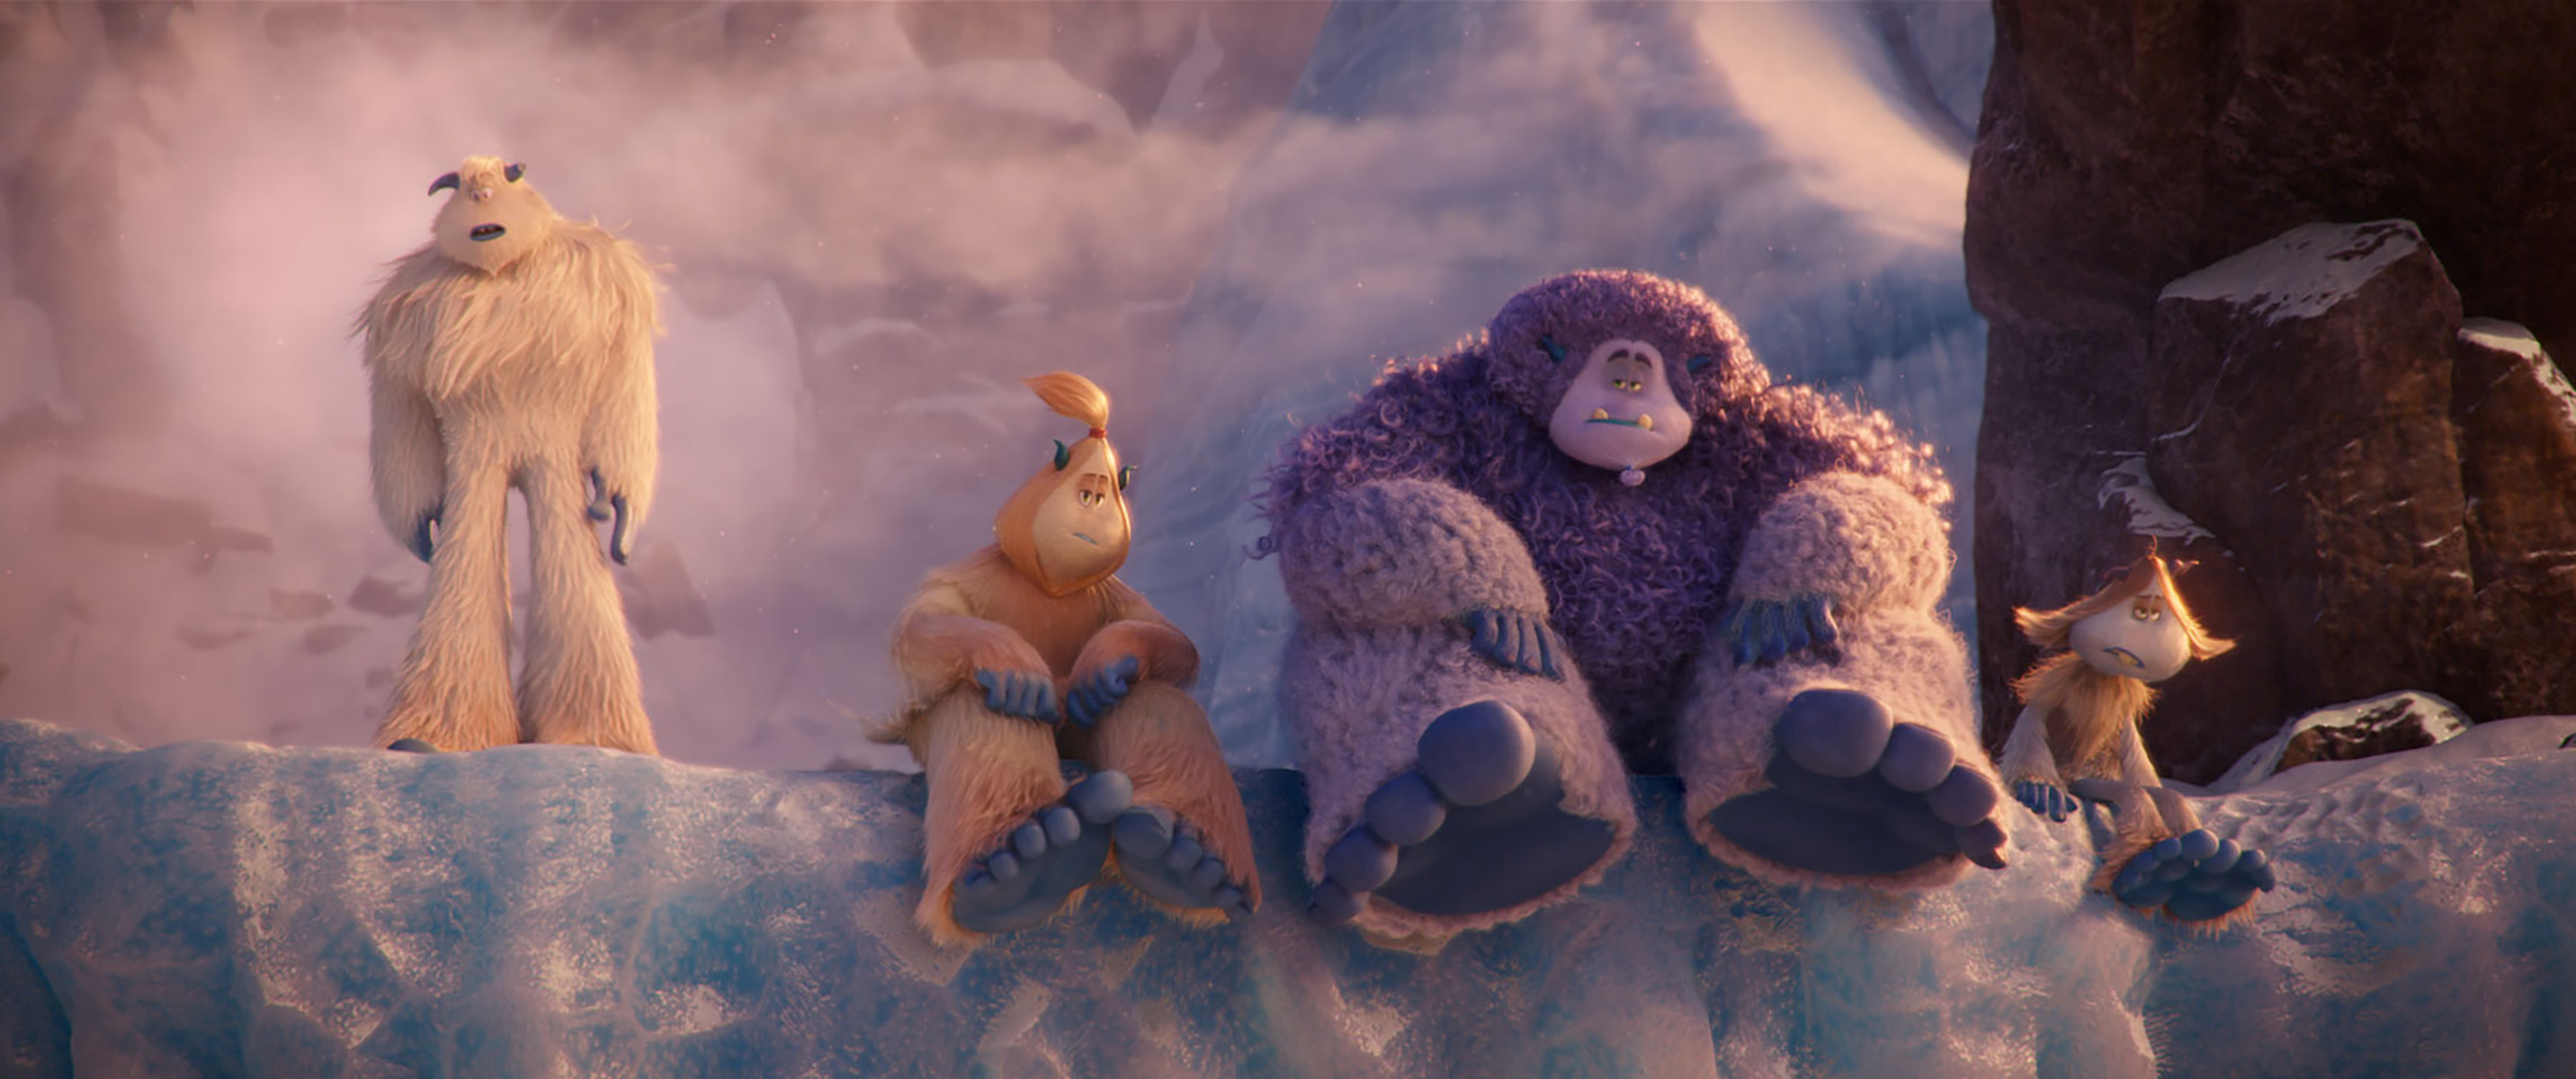 Smallfoot Gallery 28